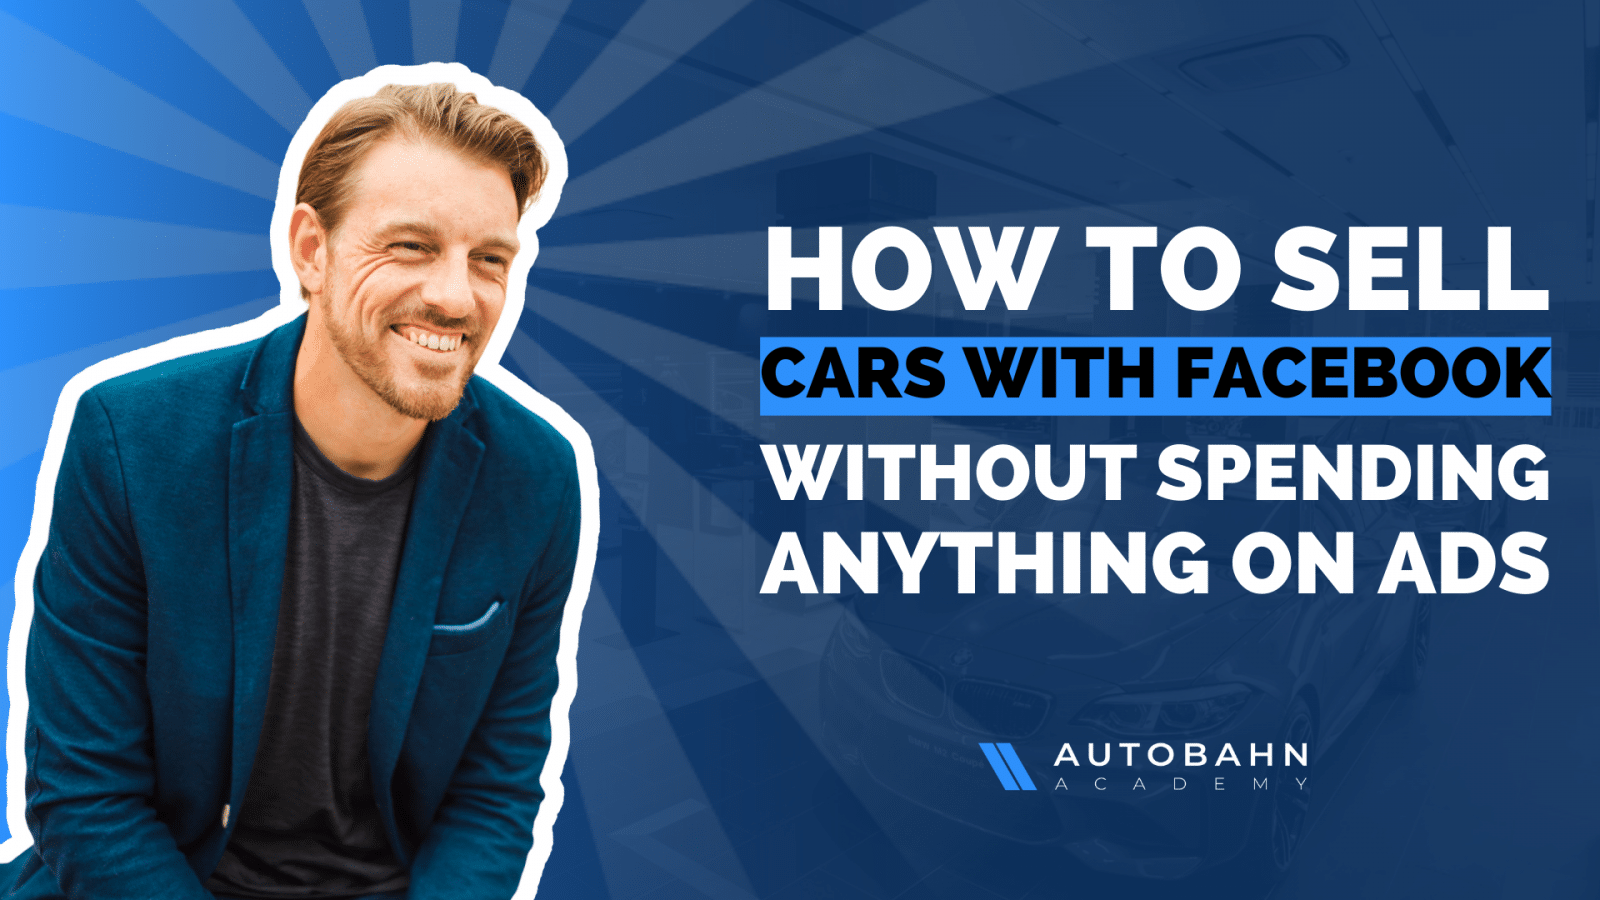 How car dealers are using Facebook Groups to sell new & used cars